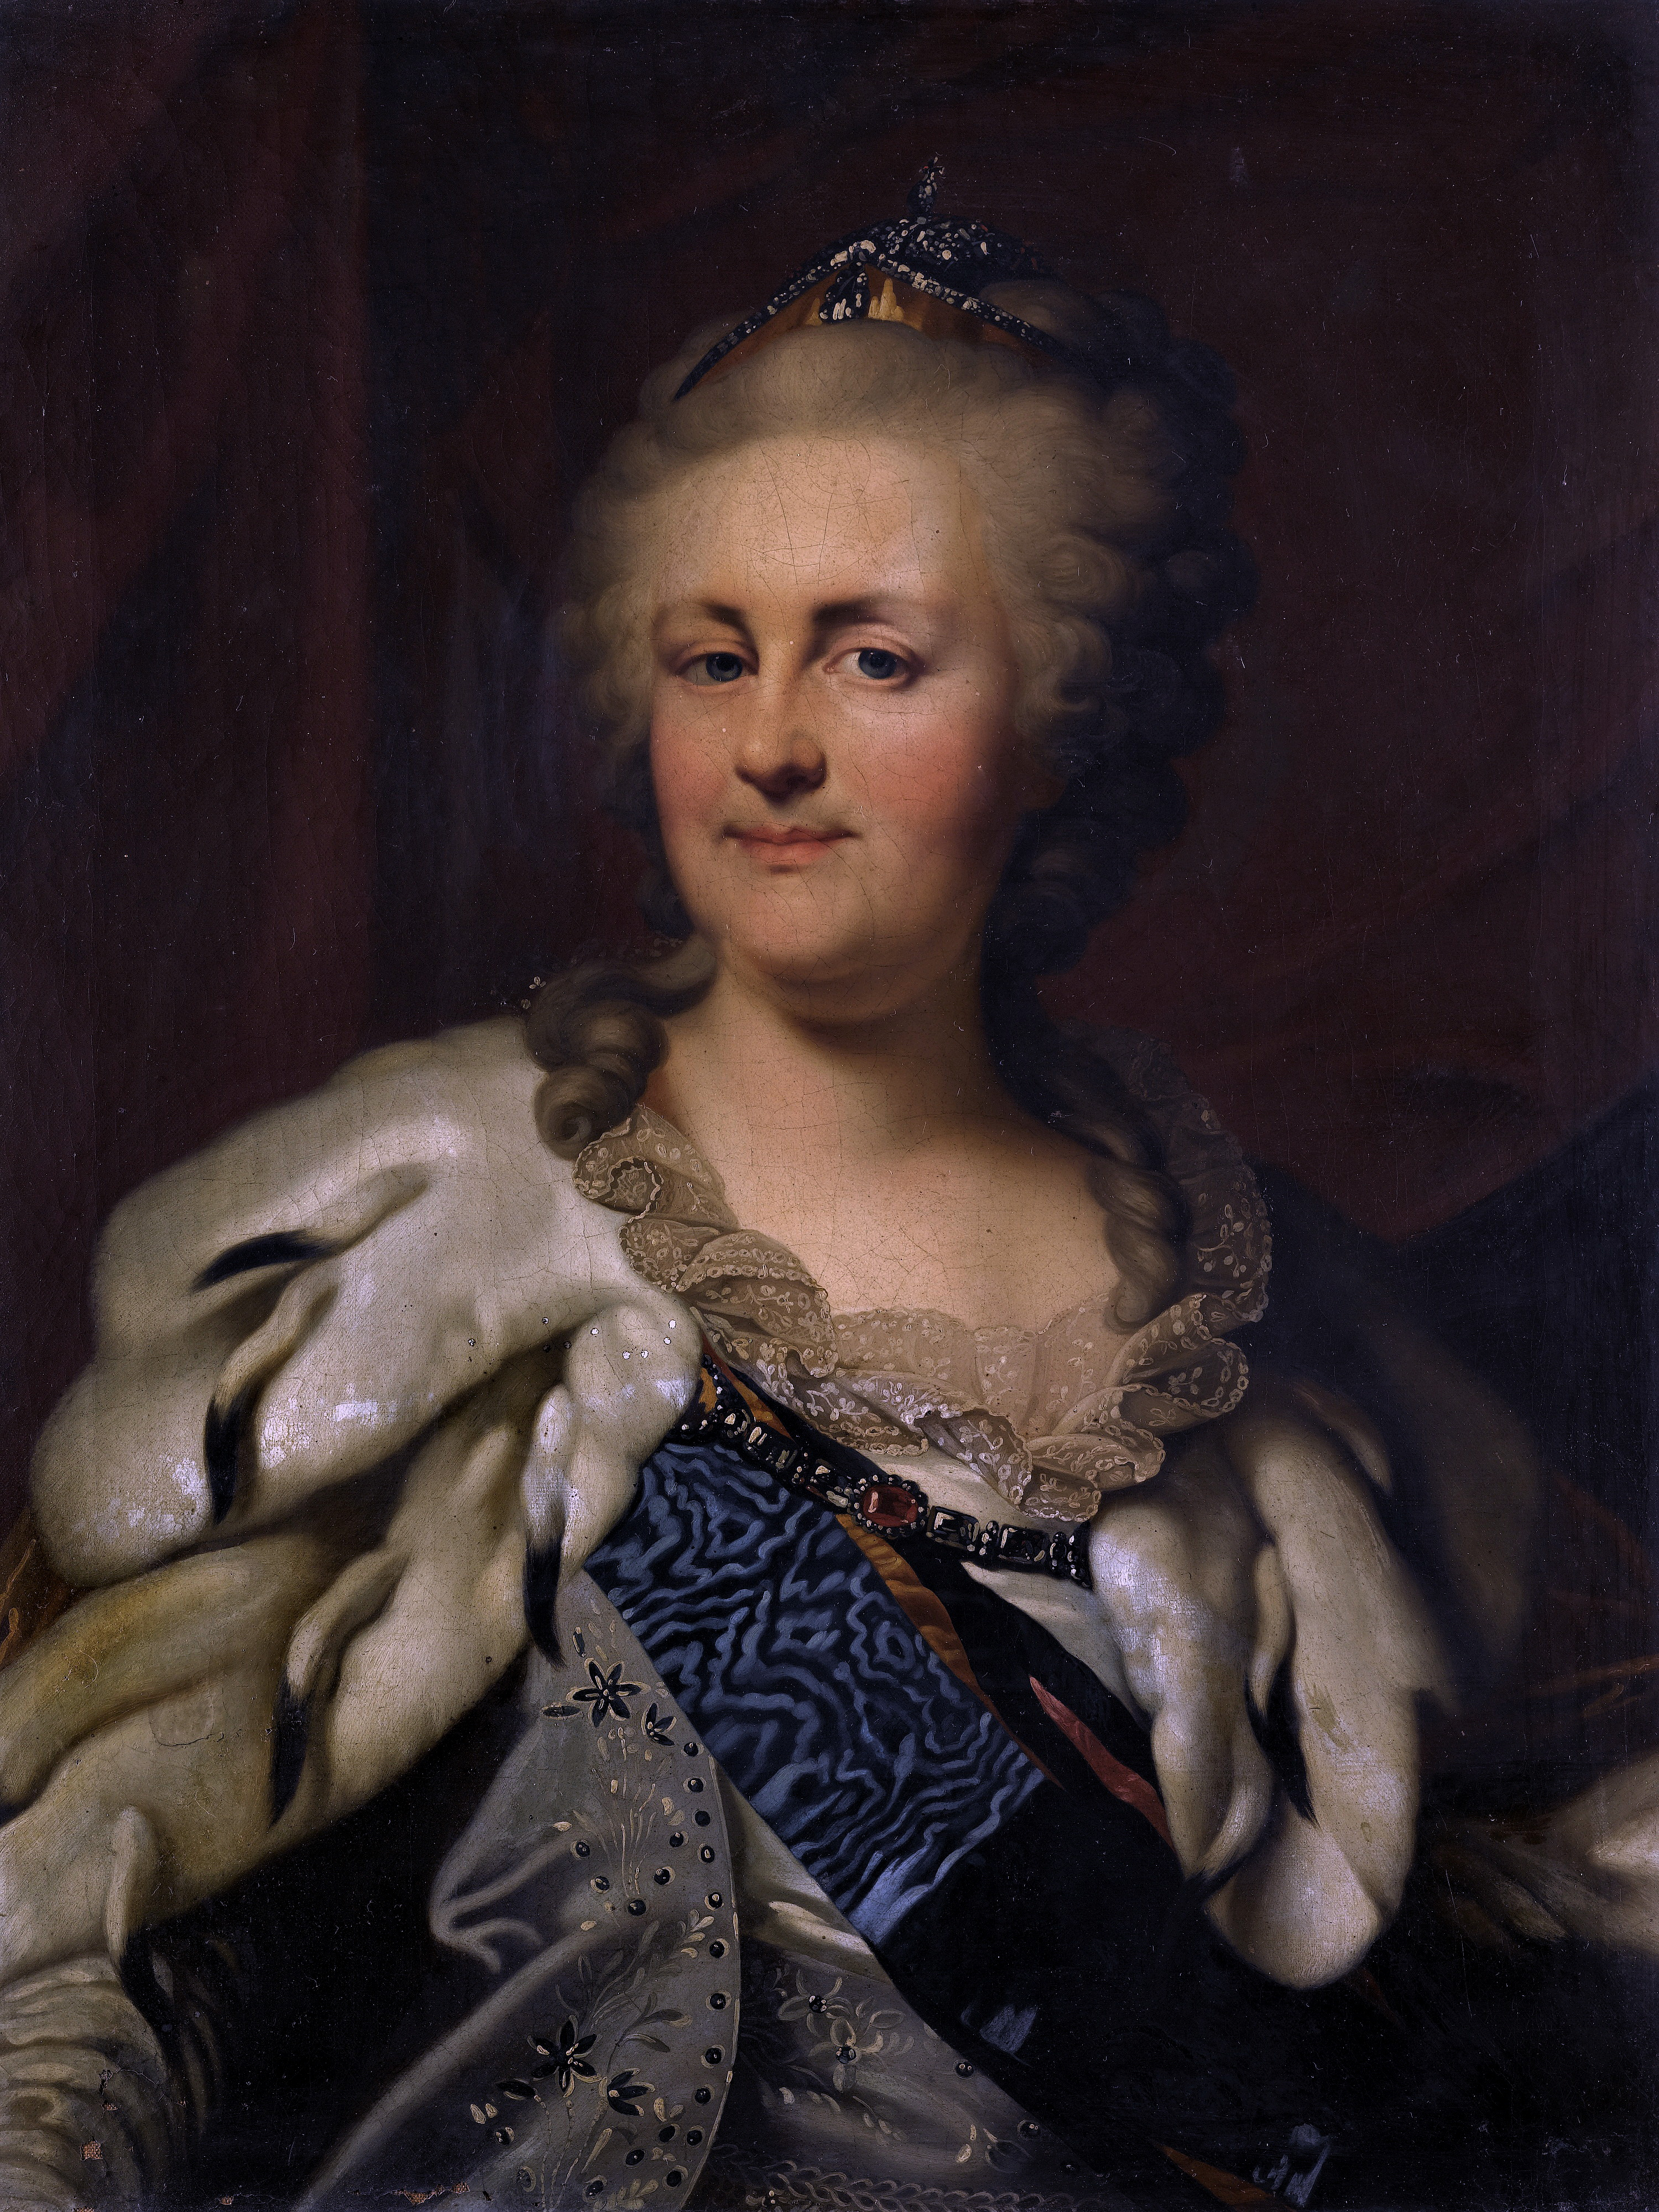 catherine the great Catherine ii, surnamed the great, empress of russia, was the daughter of christian augustus, prince of anhalt-zerbst, and his wife, johanna elizabeth of holstein-gottorp the exact date and place of her birth have been disputed, but there appears to be no reason to doubt that she was right in .